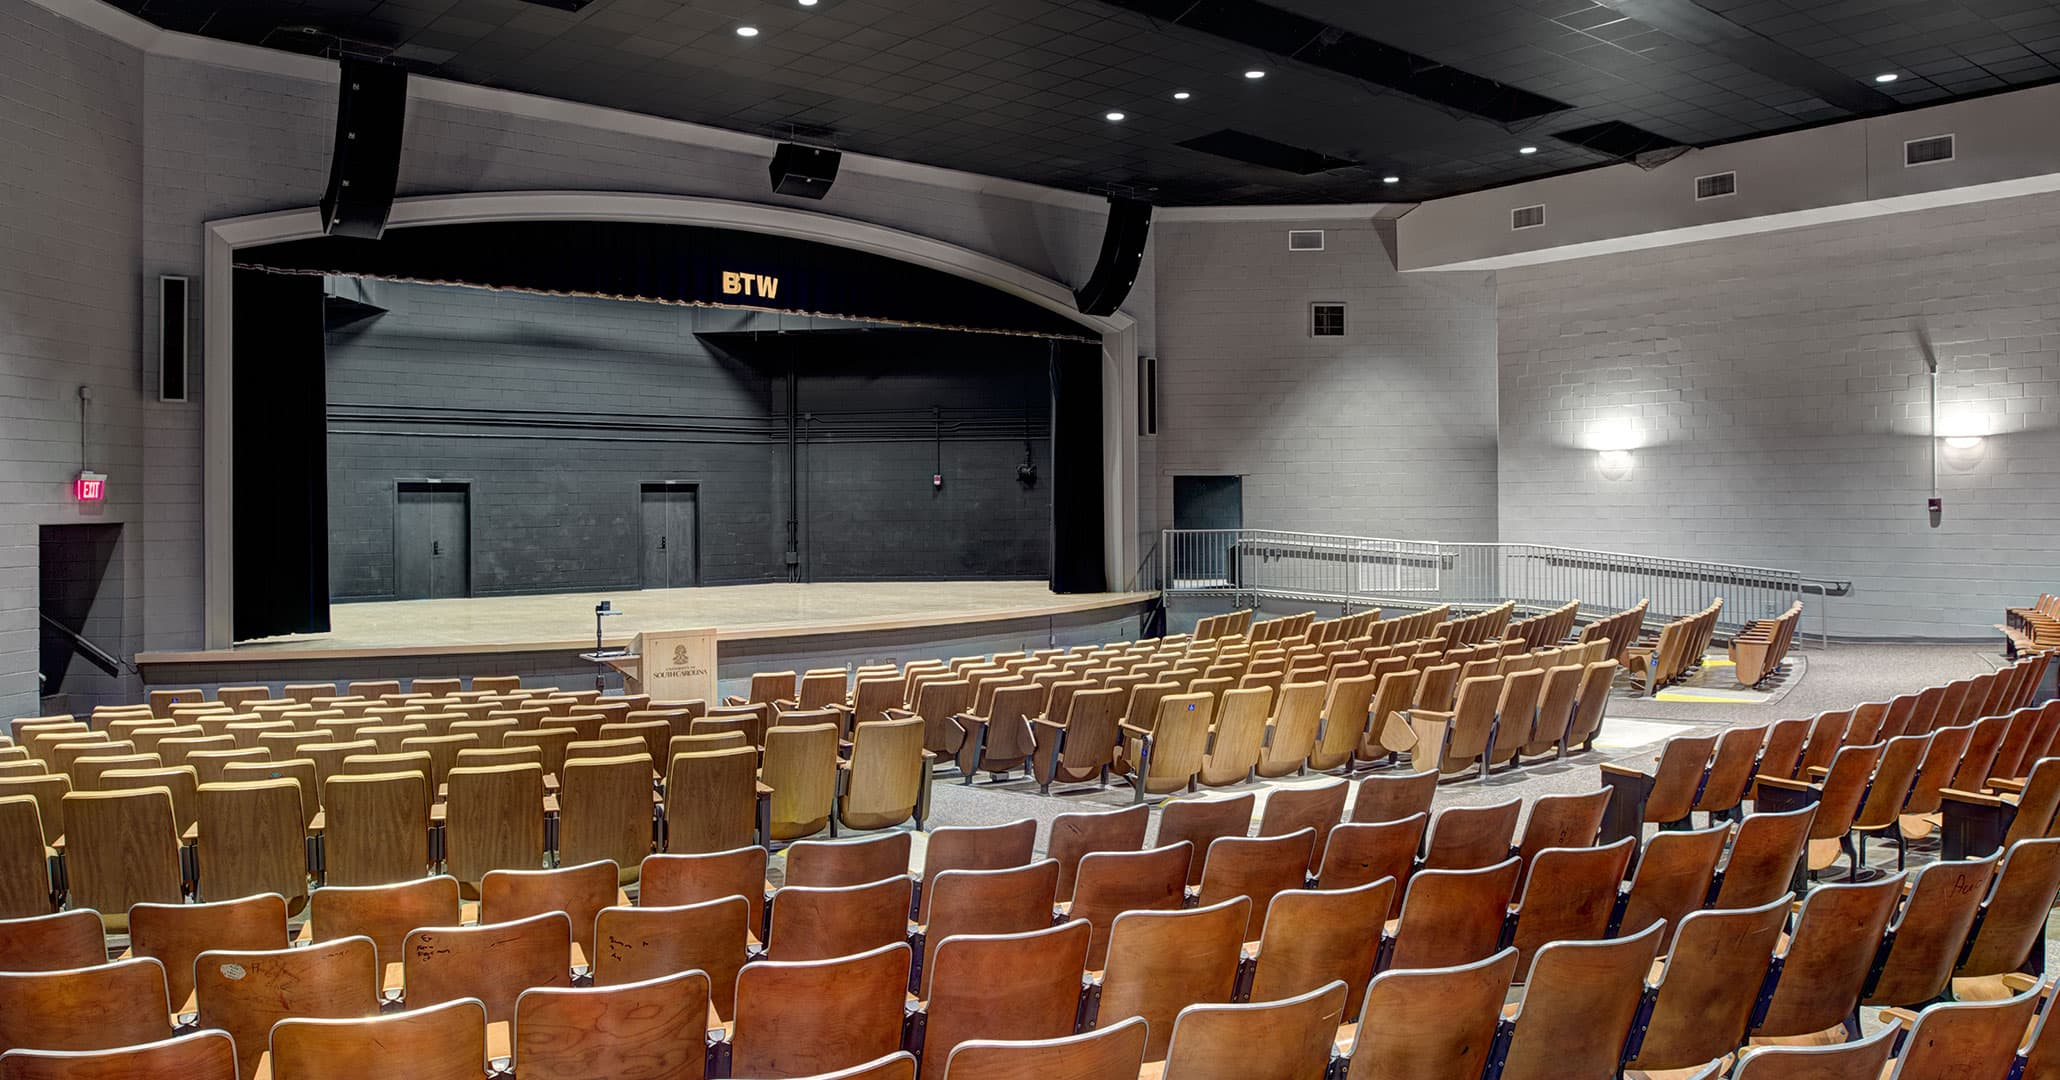 Boudreaux designed the Booker T Washington Auditorium renovation focused on African American history.